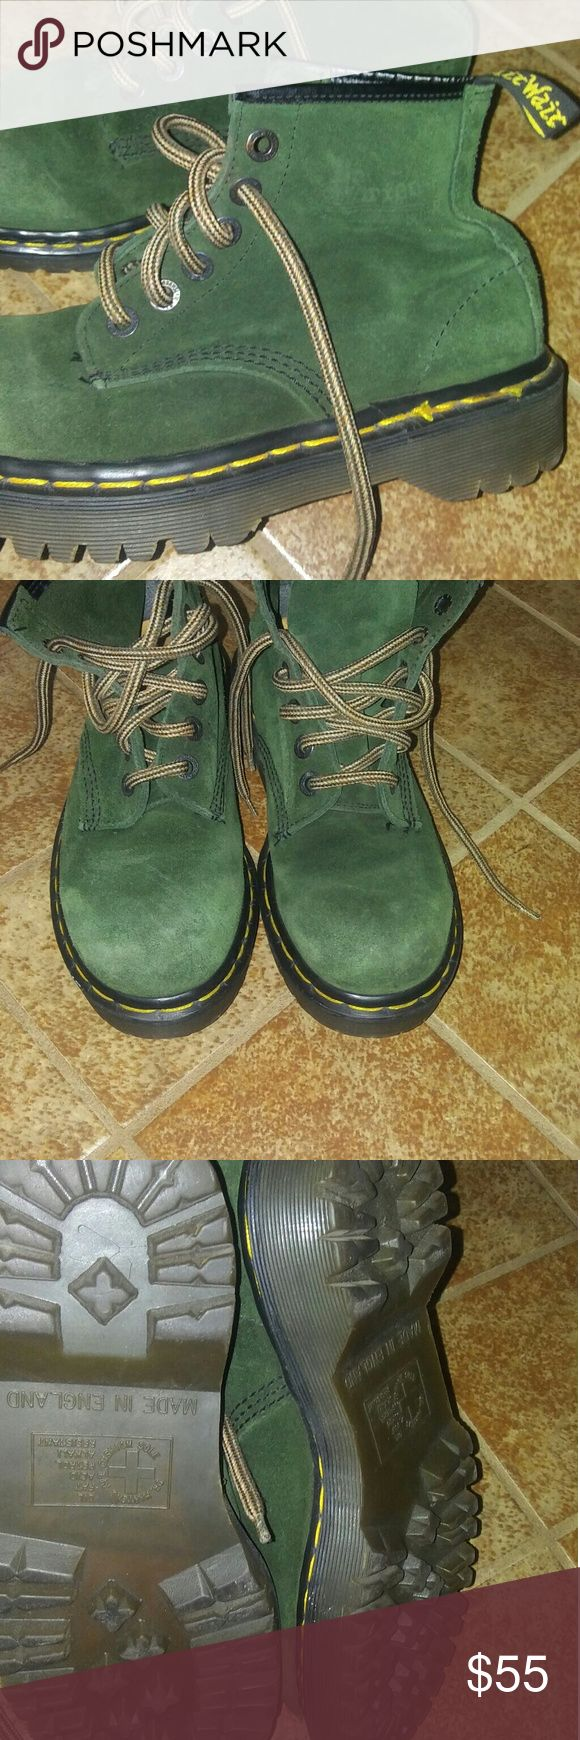 GREEN DR MARTENS BOOTS !!!?????? These are a size 5 which fits a 7 the size i wear buts are big on me. So its safe to say a big 7 perfect 7.5 they are in good condition like new please note in pictures no wear on soles. Price to go!! Would go good with. Camo!! Thanks Dr. Martens Shoes Lace Up Boots